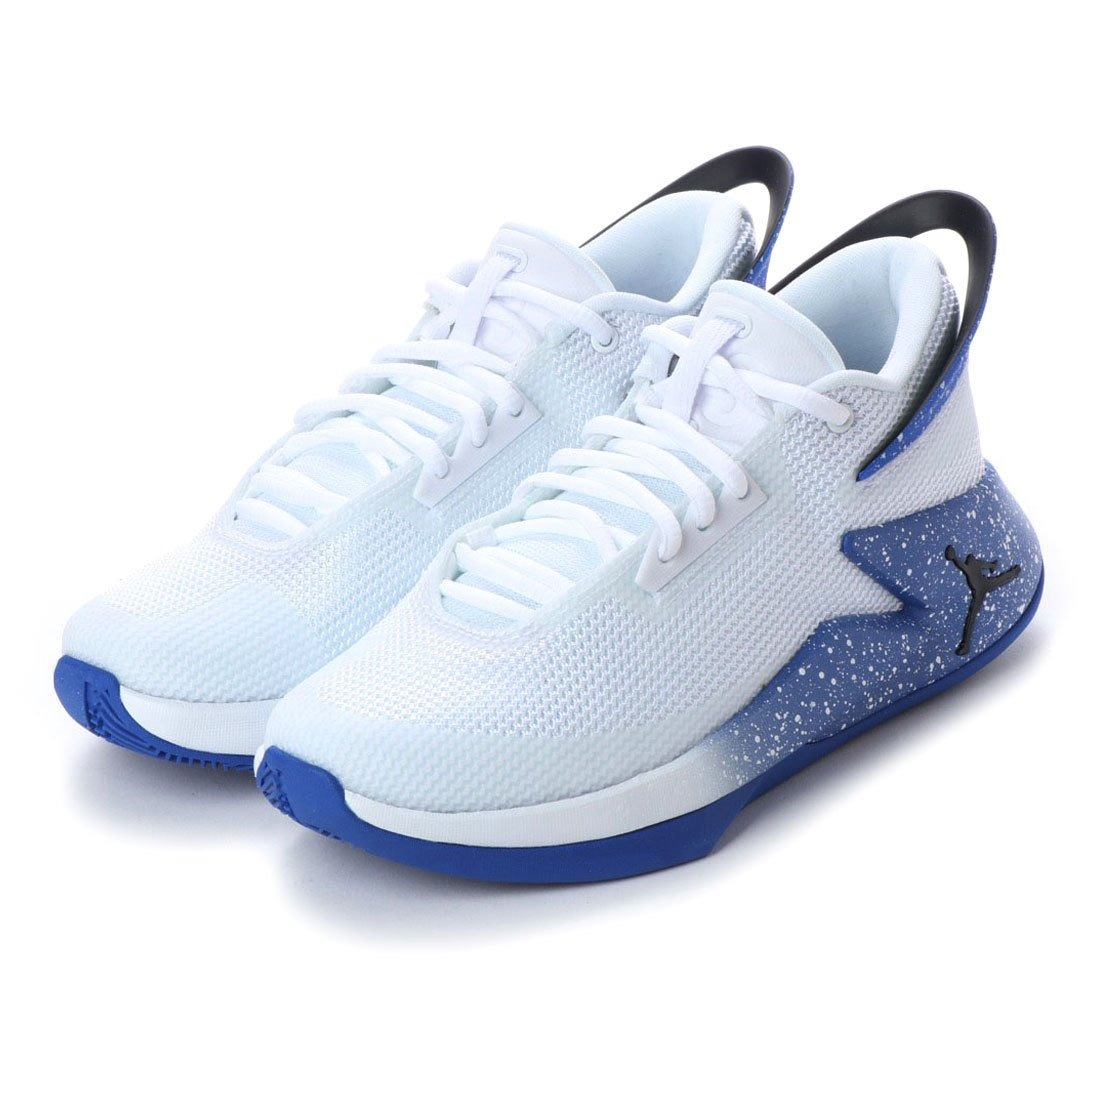 timeless design 18648 60d79 tenis nike jordan fly lockdown blanco  tala   23 original. Cargando zoom.